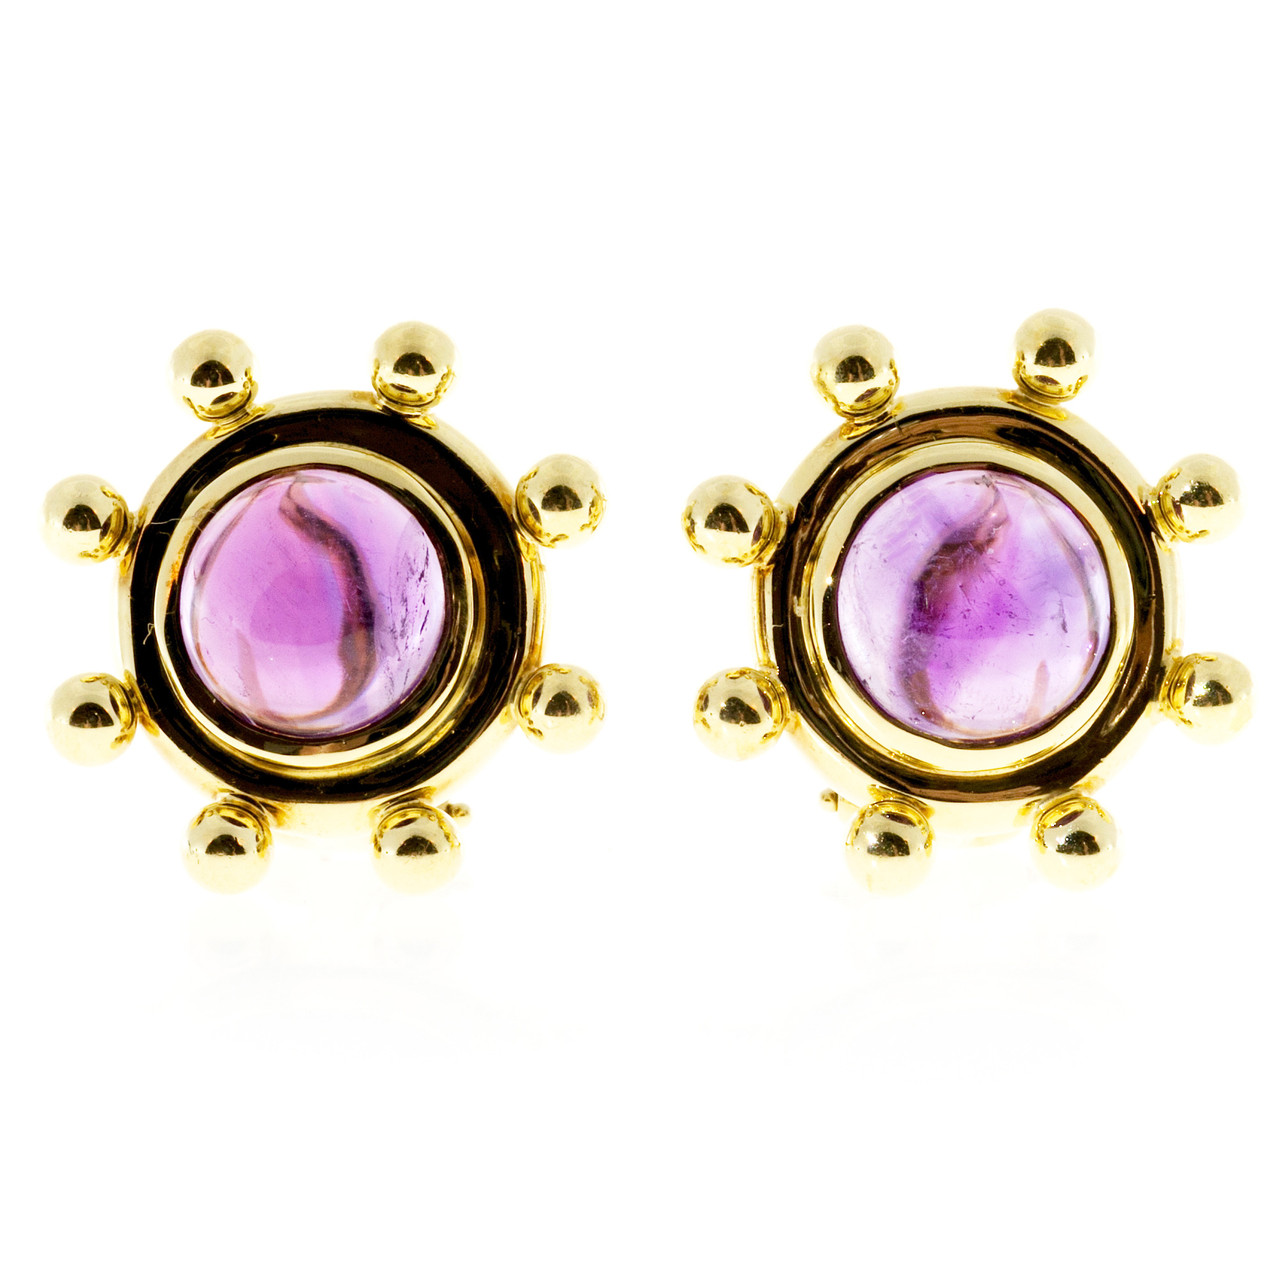 c32c0dff7 Vintage Tiffany + Co Paloma Picasso 5.00ct Cabochon Amethyst Earrings 18k -  petersuchyjewelers